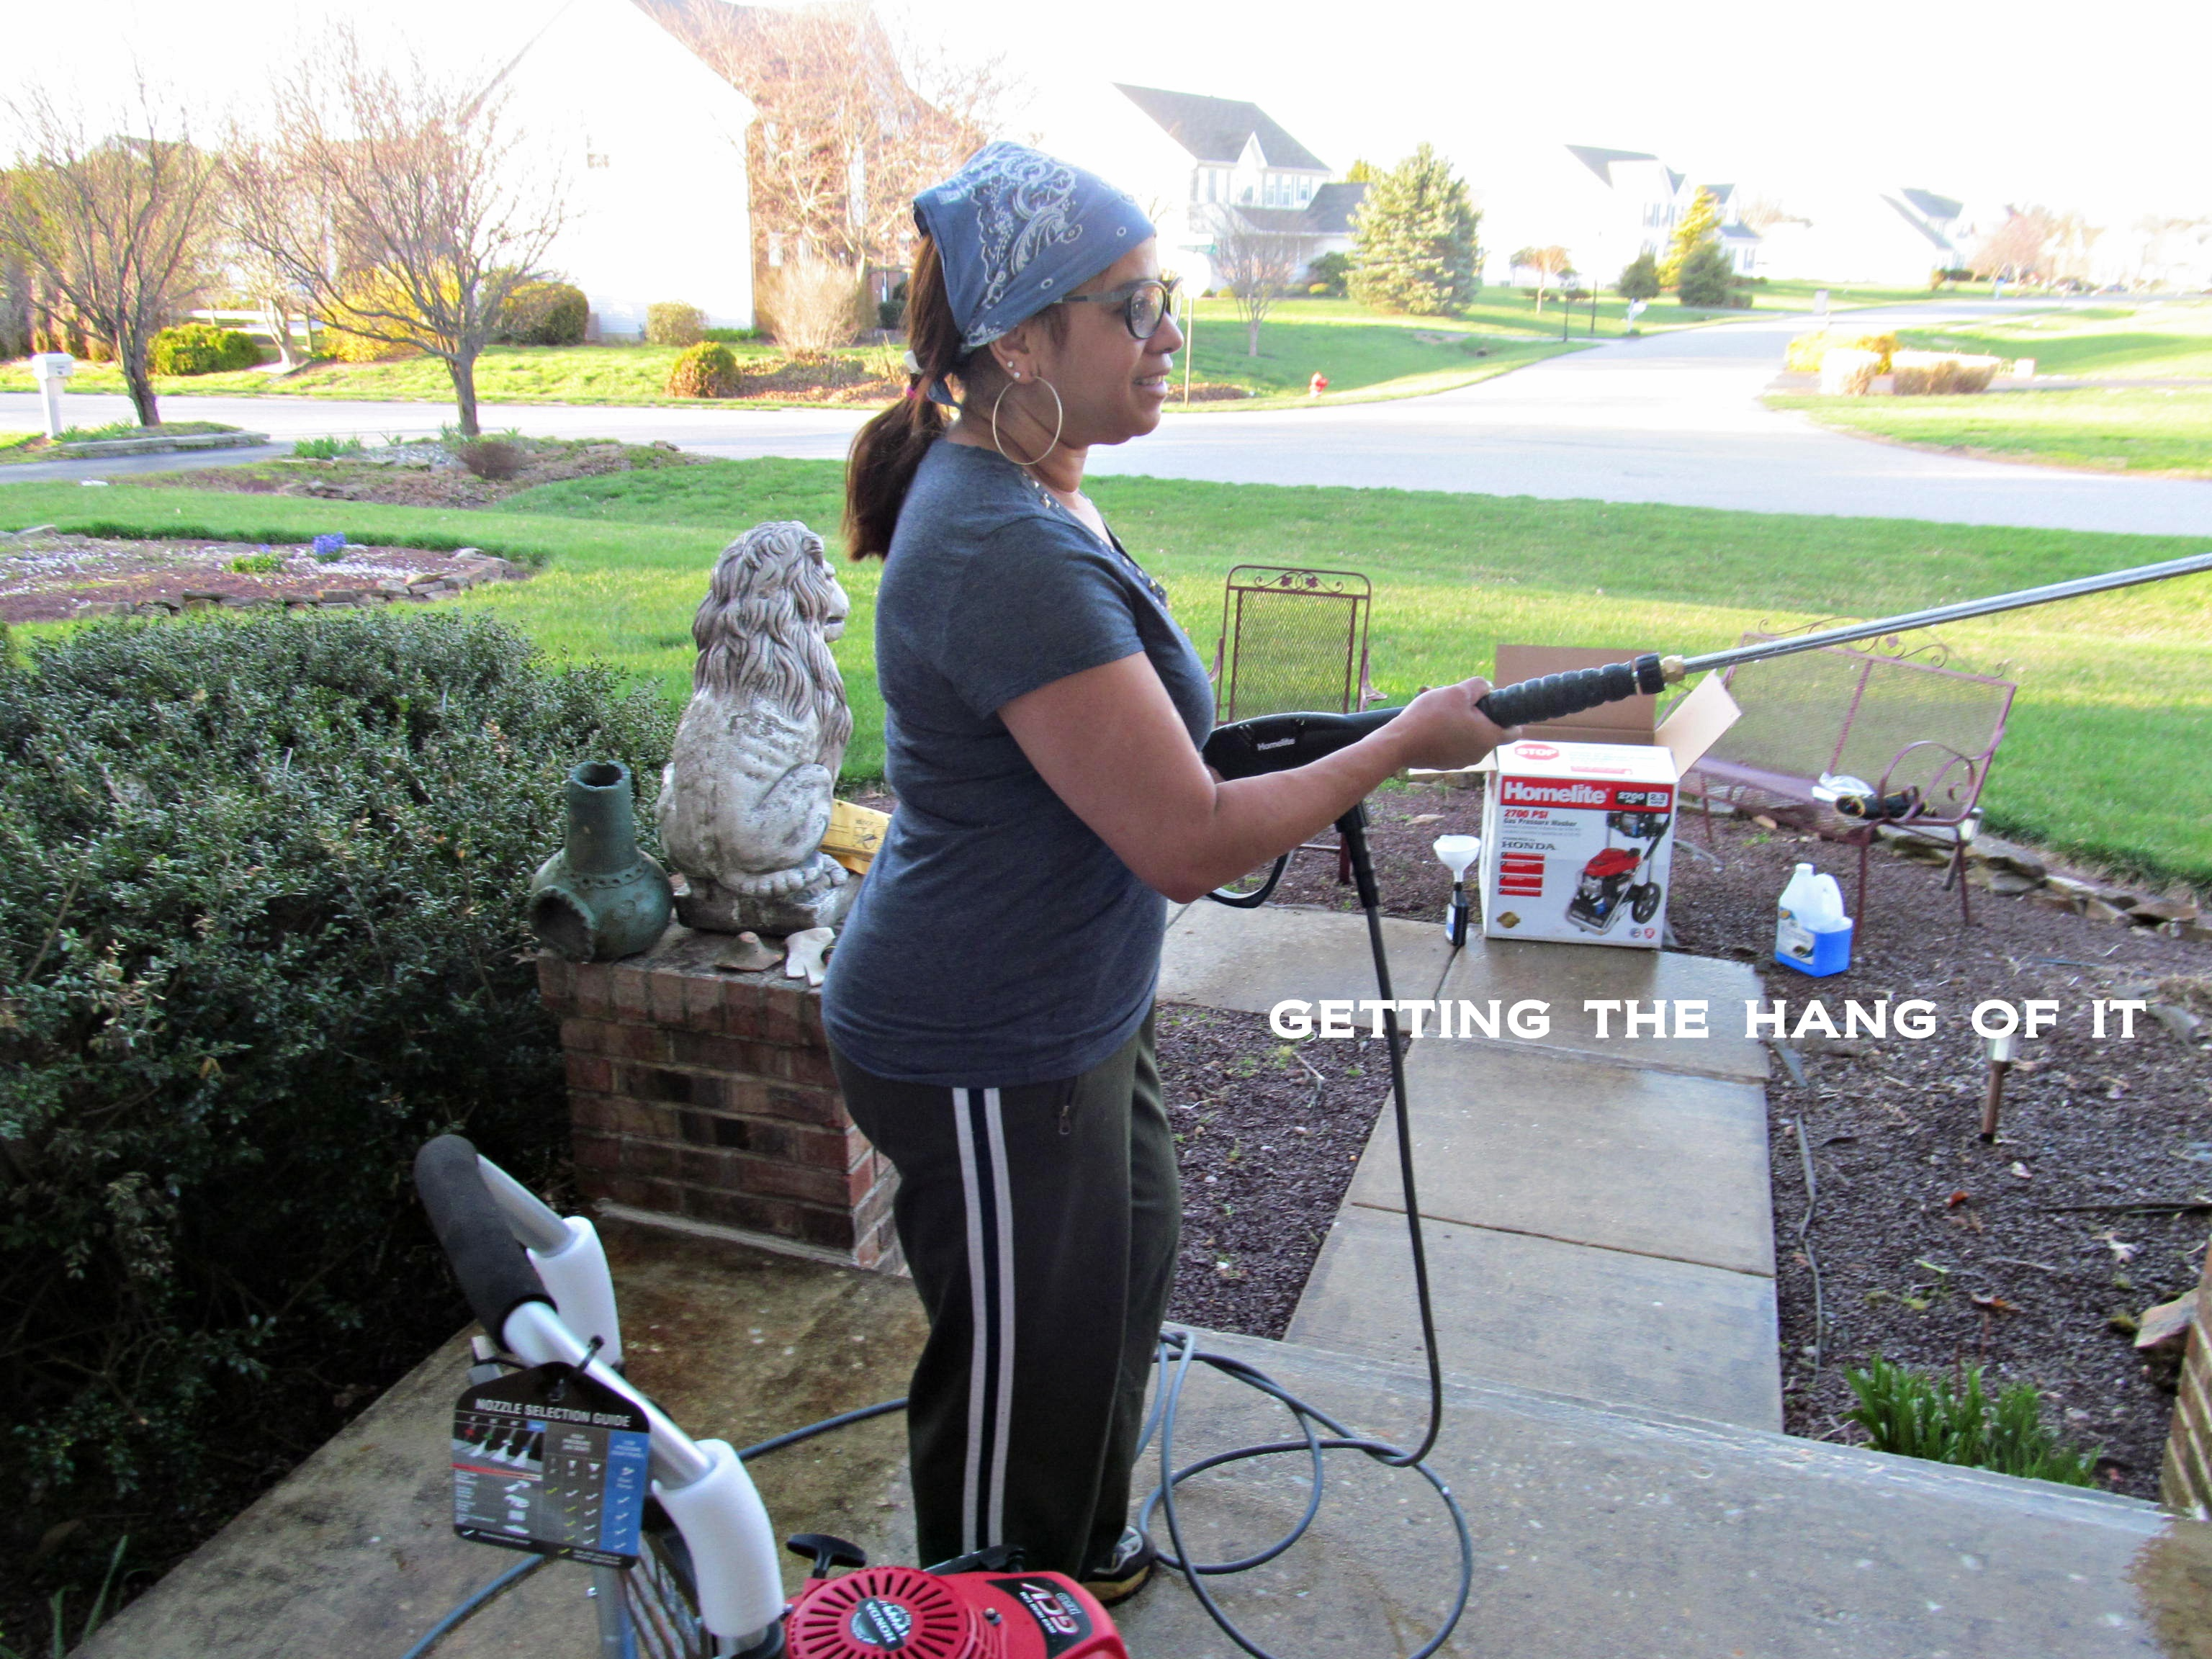 Homelite Pressure Washer Unsolicited Product Review